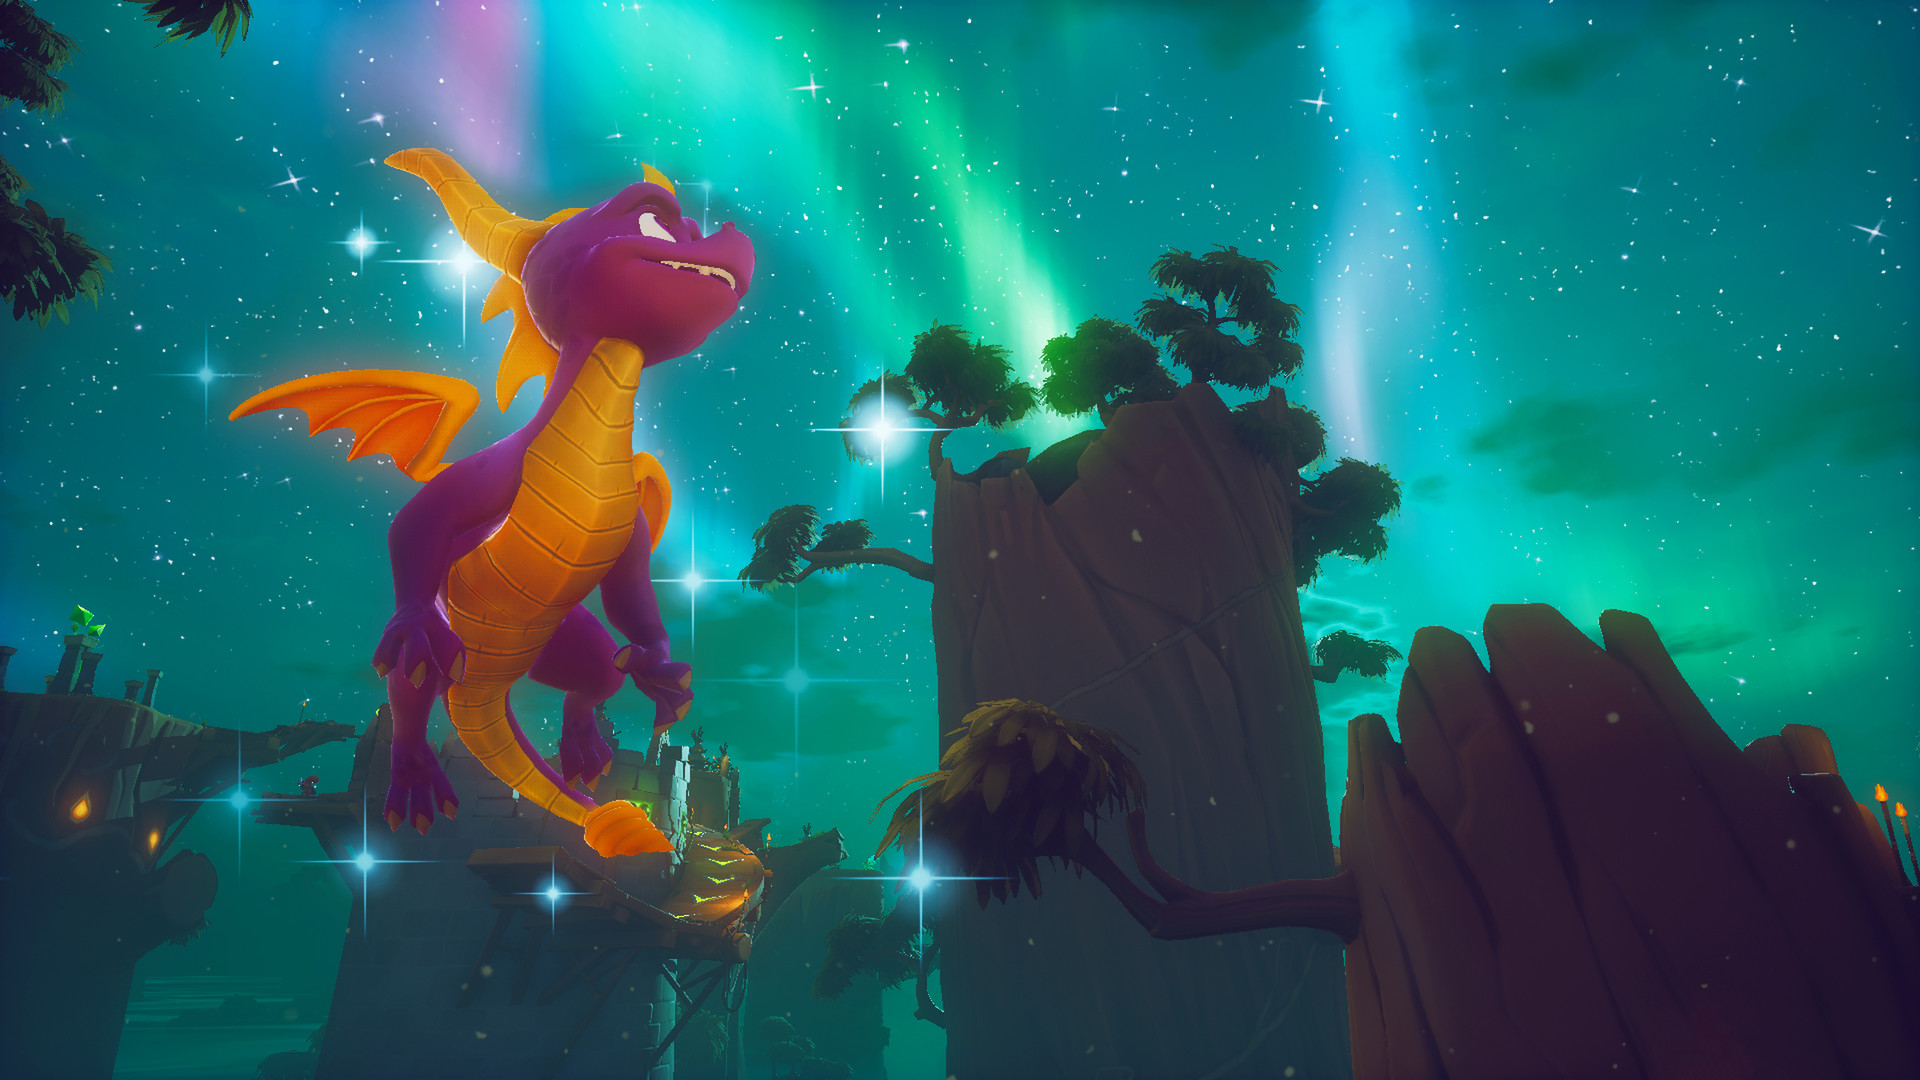 Artstation Spyro Reignited Treetops Didier Nguyen For spyro reignited trilogy on the playstation 4, a gamefaqs message board topic titled hey, f treetops is the hardest level among all 3 spyro games. artstation spyro reignited treetops